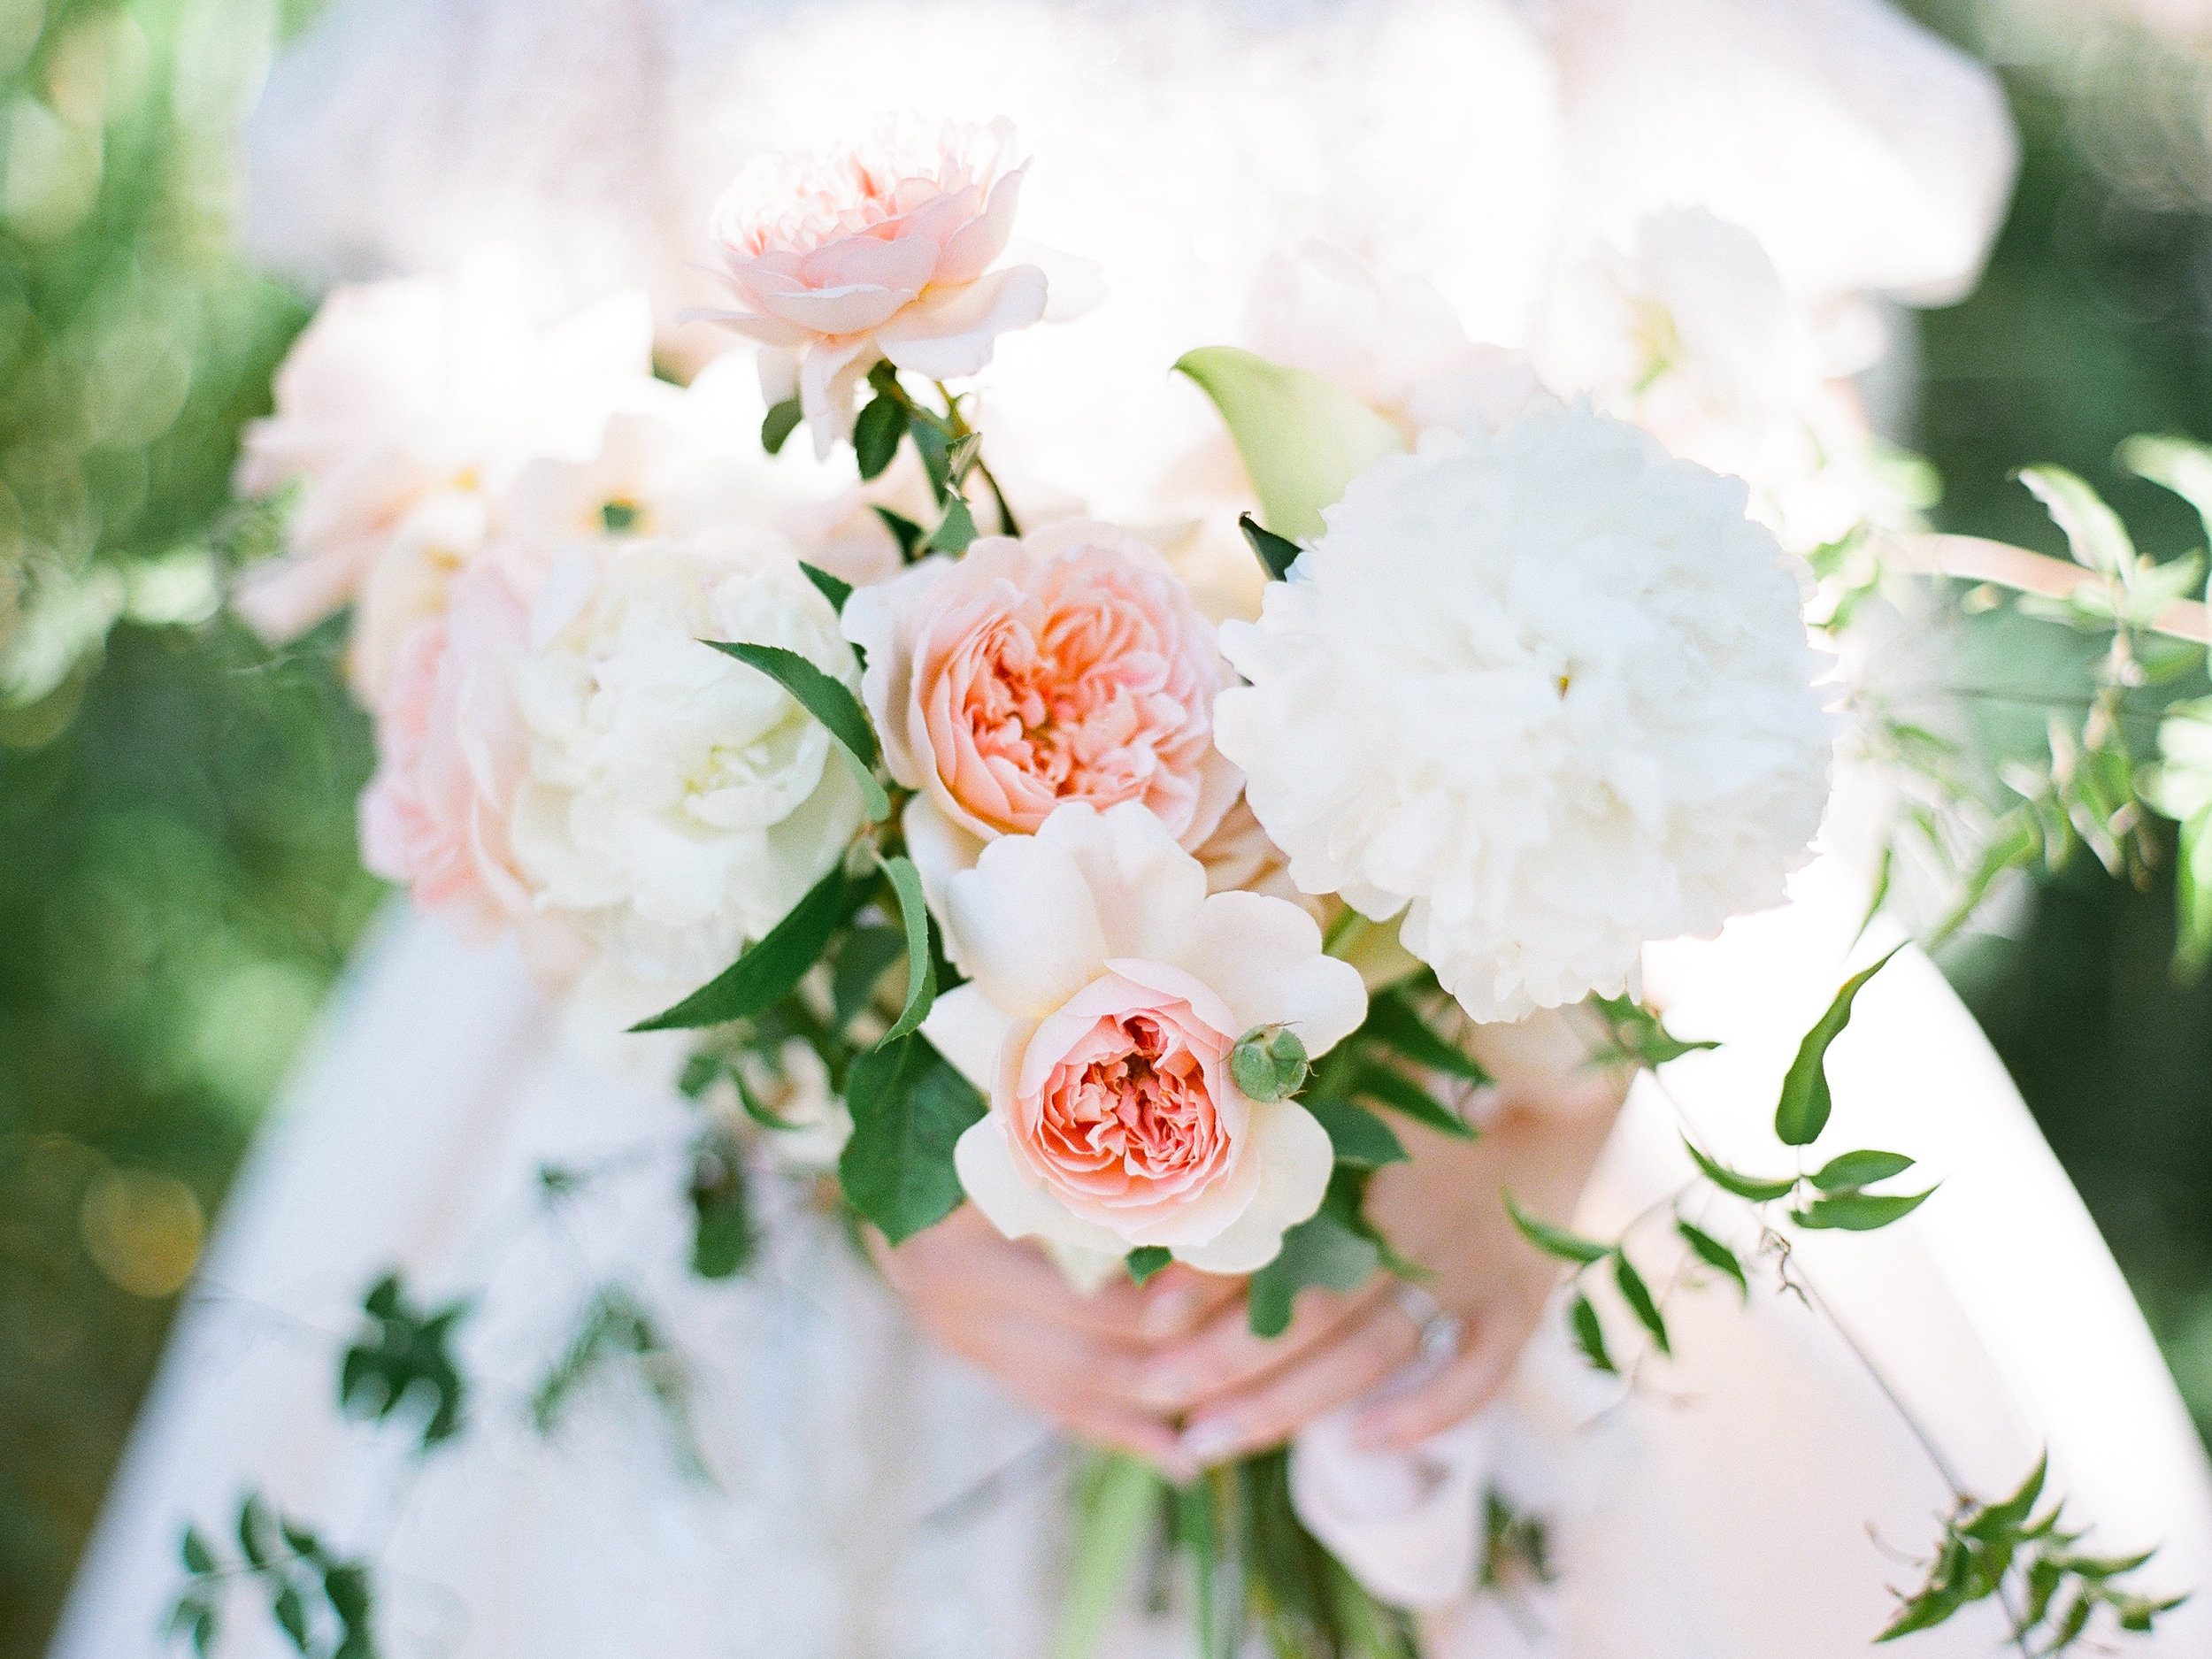 - PLANNER | Blooming WedVENUE | Hakone GardensPHOTOGRAPHER | Catherine LiuVIDEOGRAPHER | Yuqiao HanFLORIST | Rust and FlourishCATERING | Caterman CateringRENTALS | Bright Event RentalsCHAIRS. CHARGES. CUTLERY | The Chiavari GuysCAKE | Lavie Douce Design